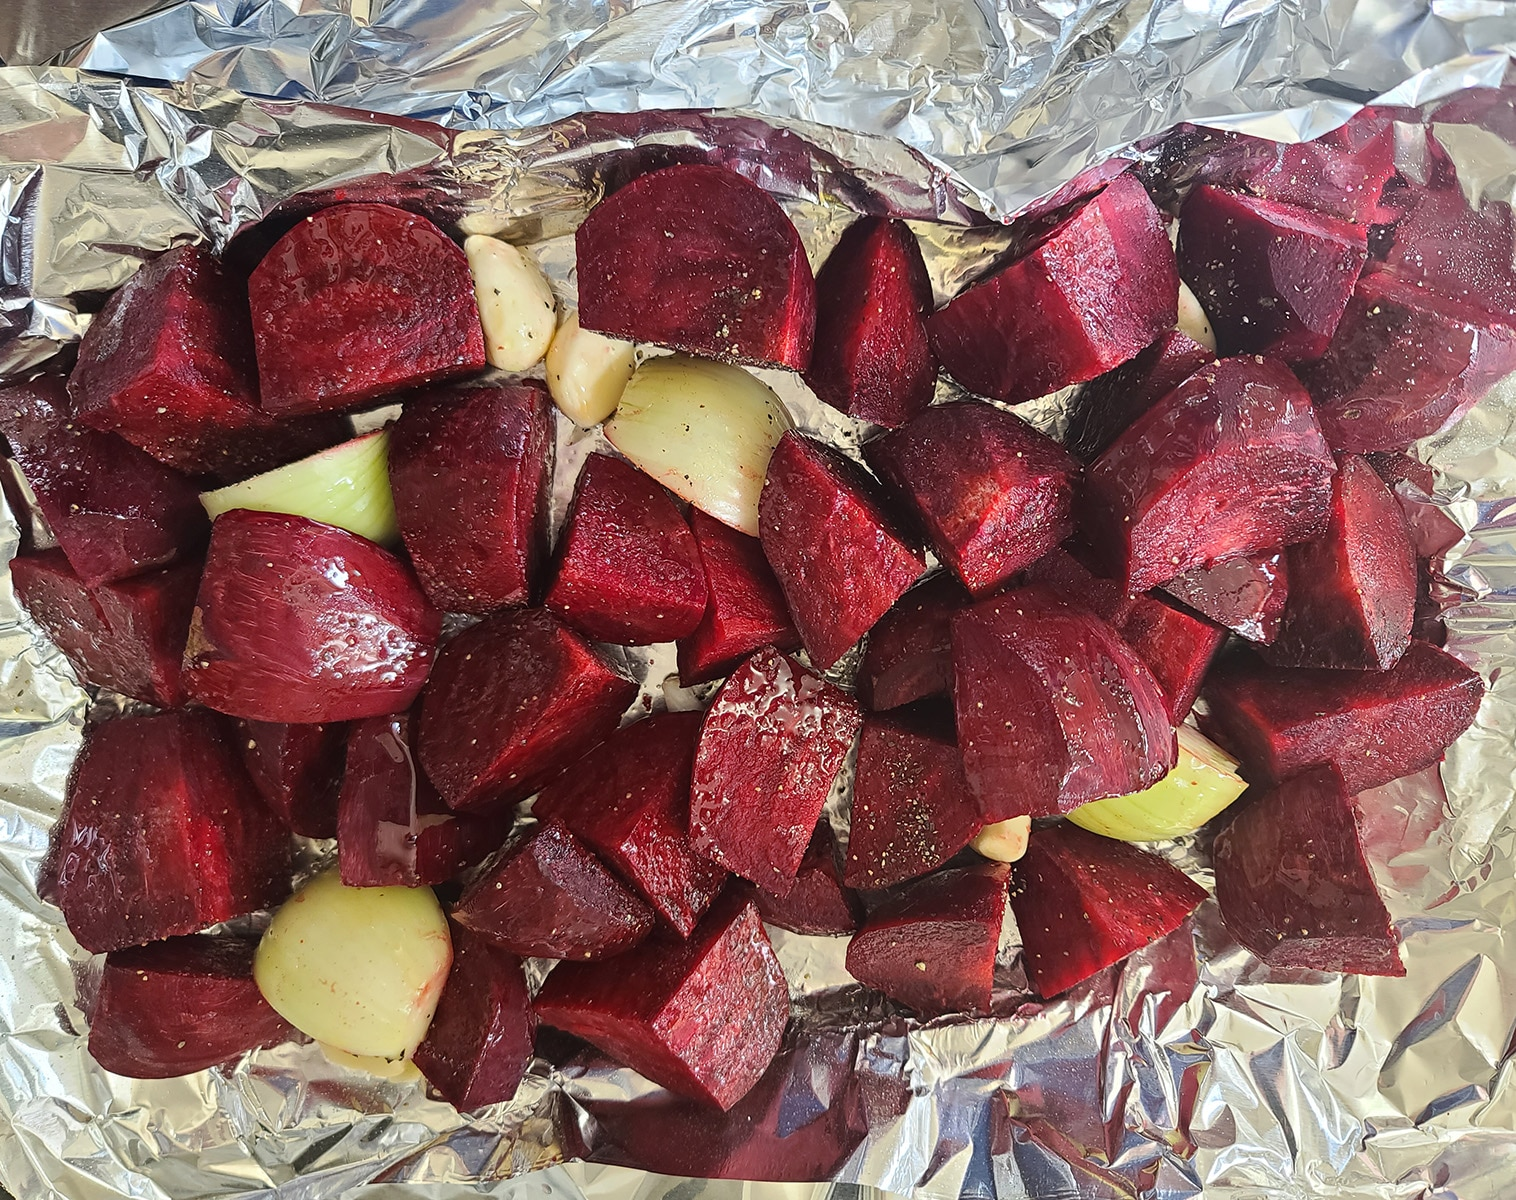 Chopped peeled beets, onions, and garlic cloves on foil.